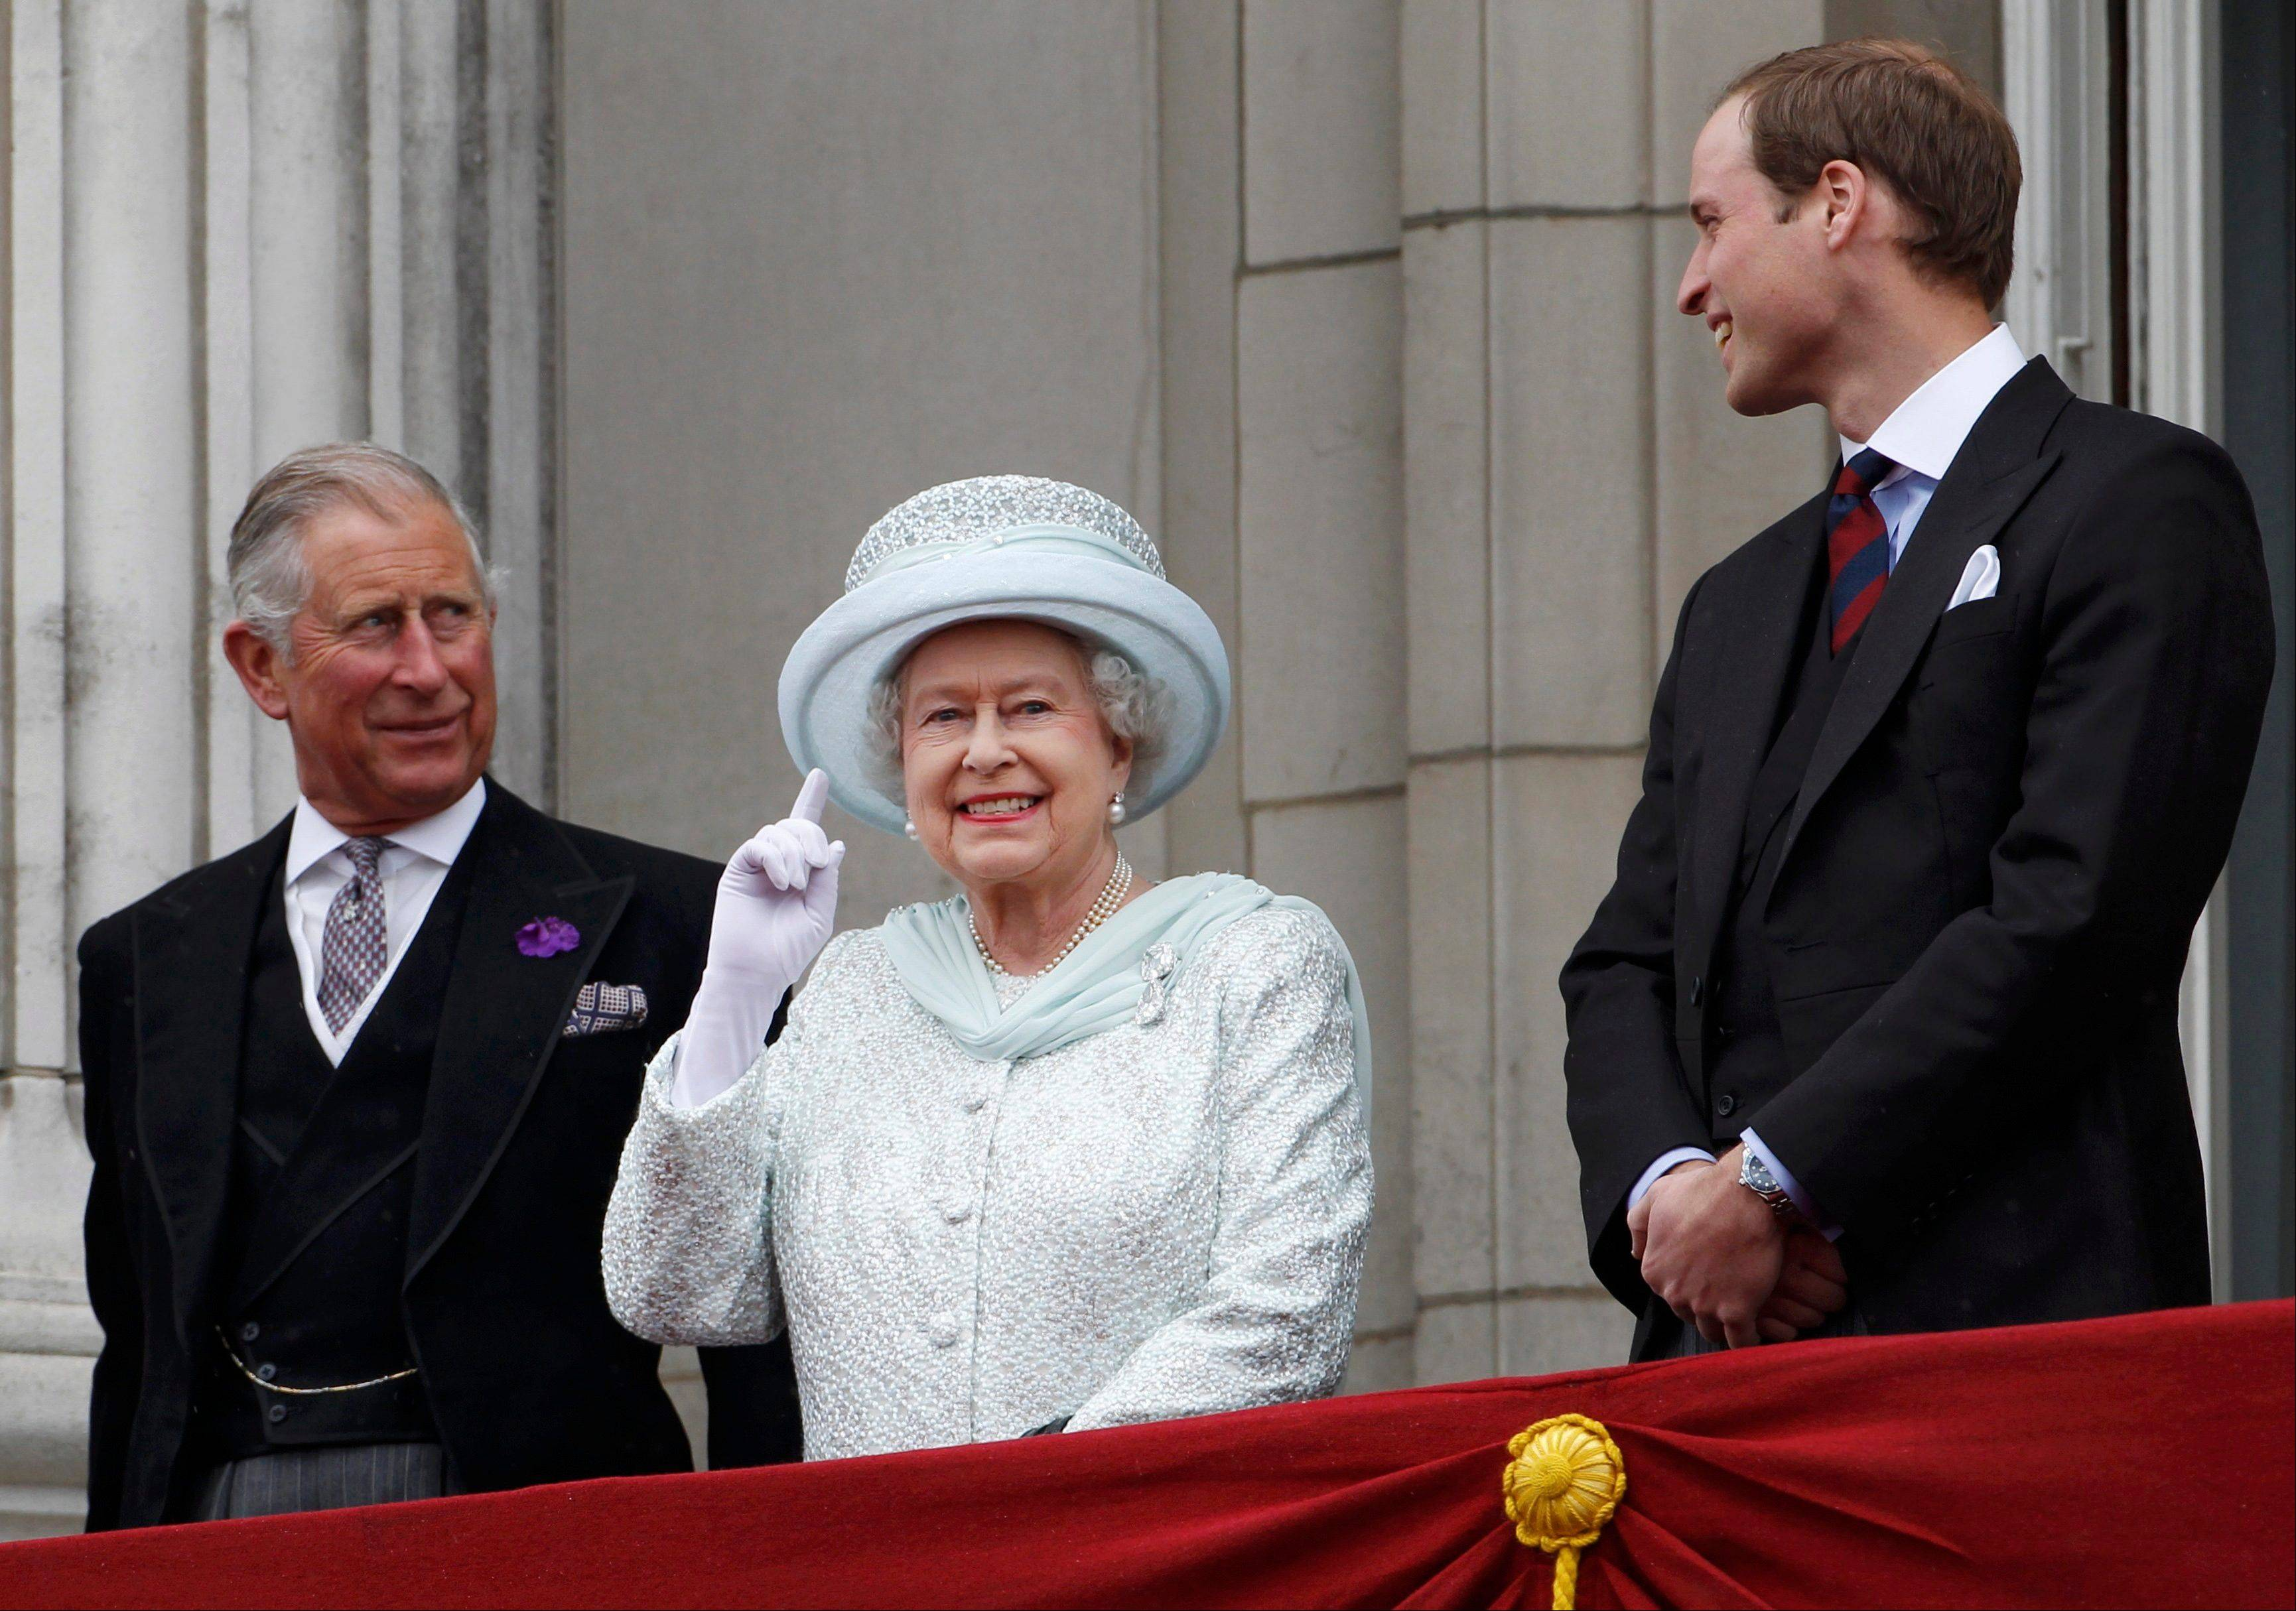 Britain's Prince Charles, Britain's Queen Elizabeth II and Prince William stand on the balcony at Buckingham Palace during the Diamond Jubilee celebrations in central London Tuesday June 5, 2012.